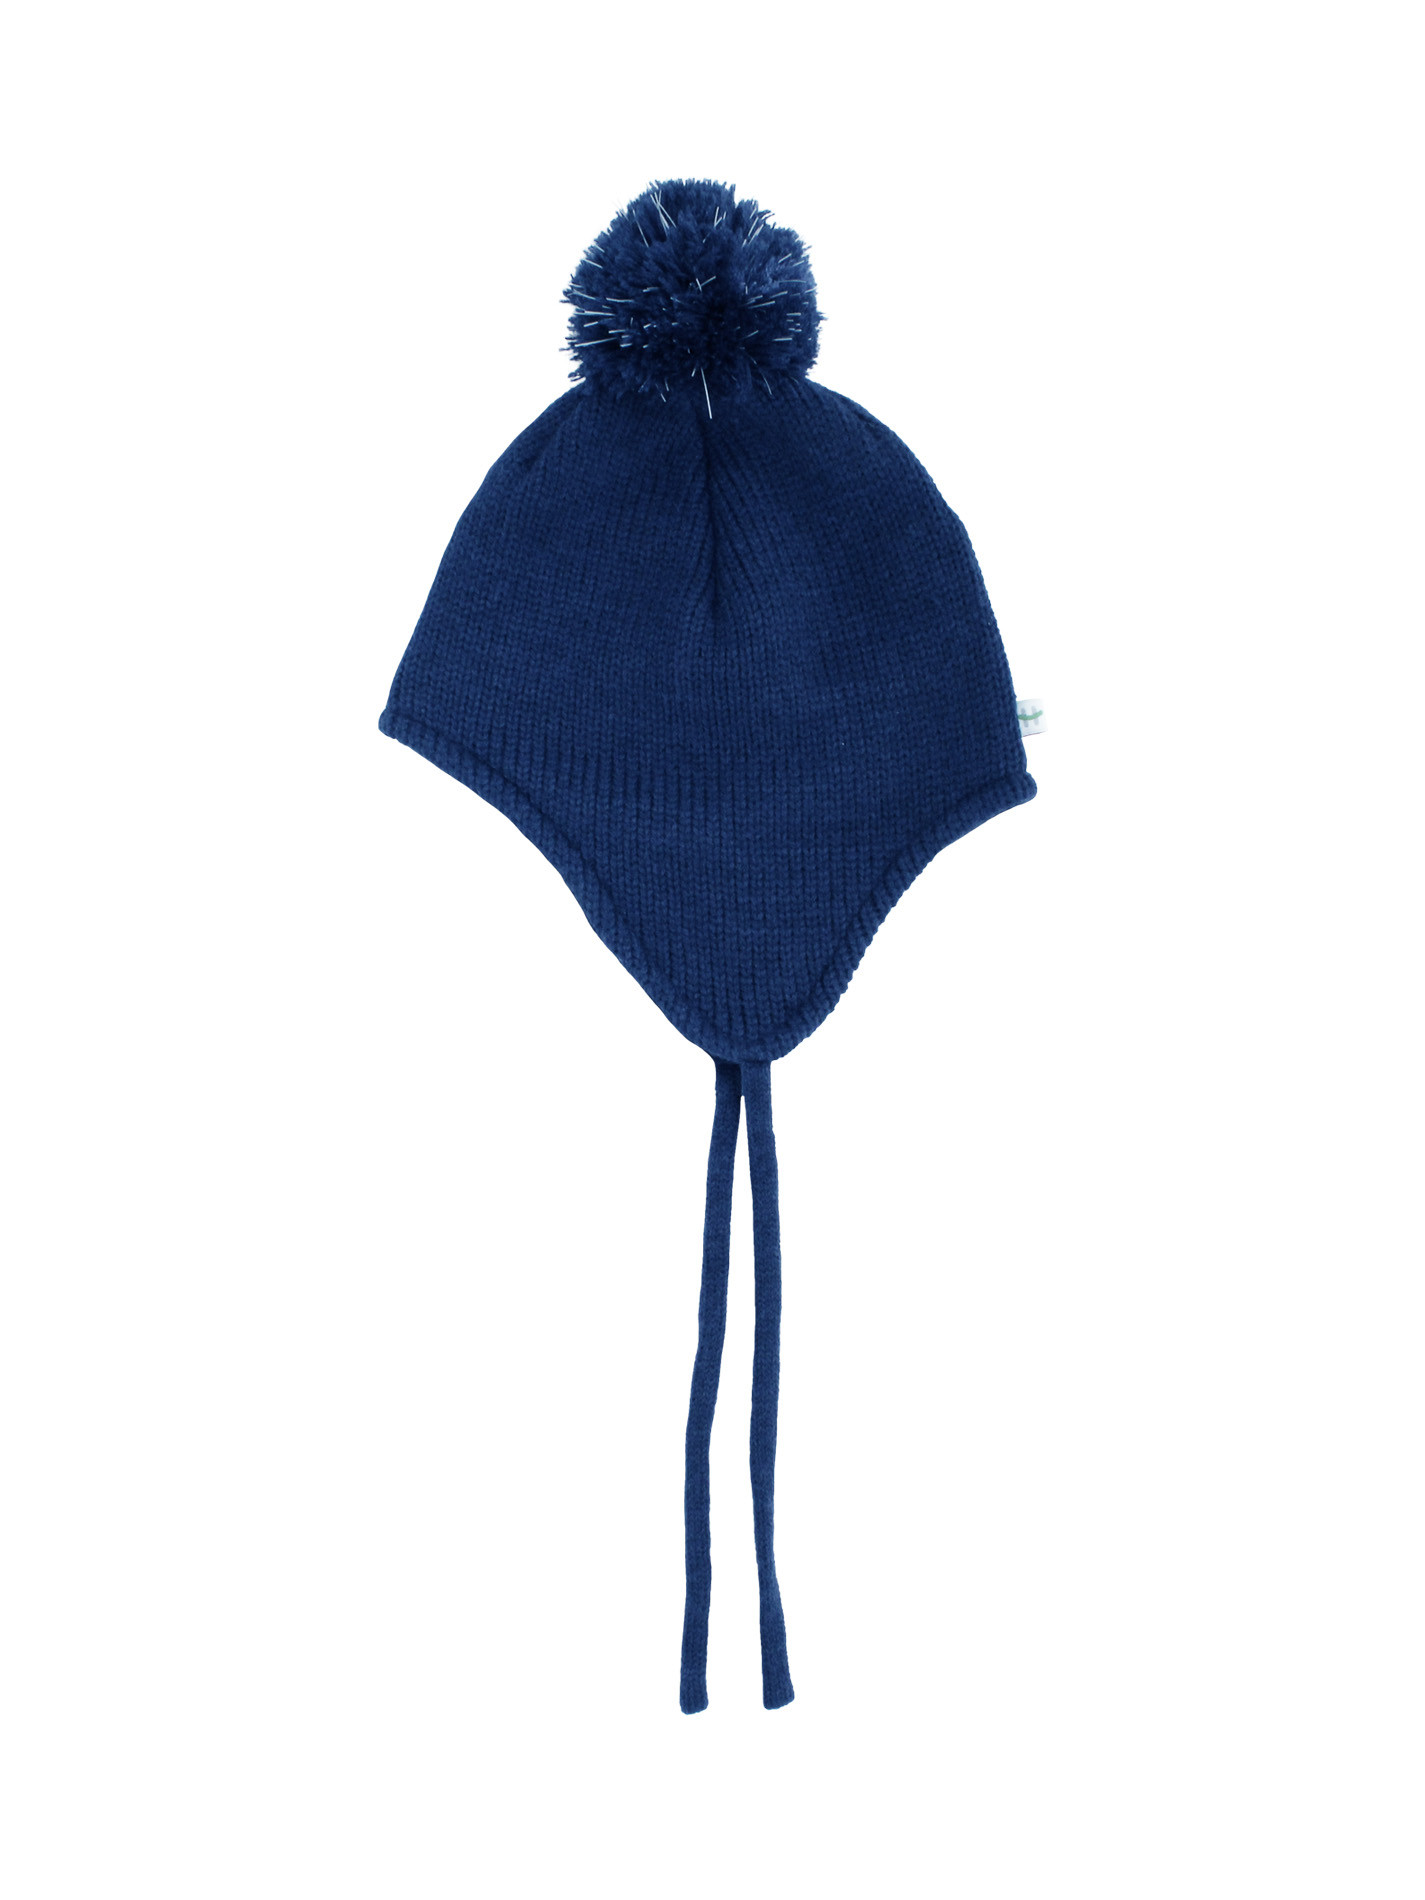 Tuque 2-6 ans - Navy